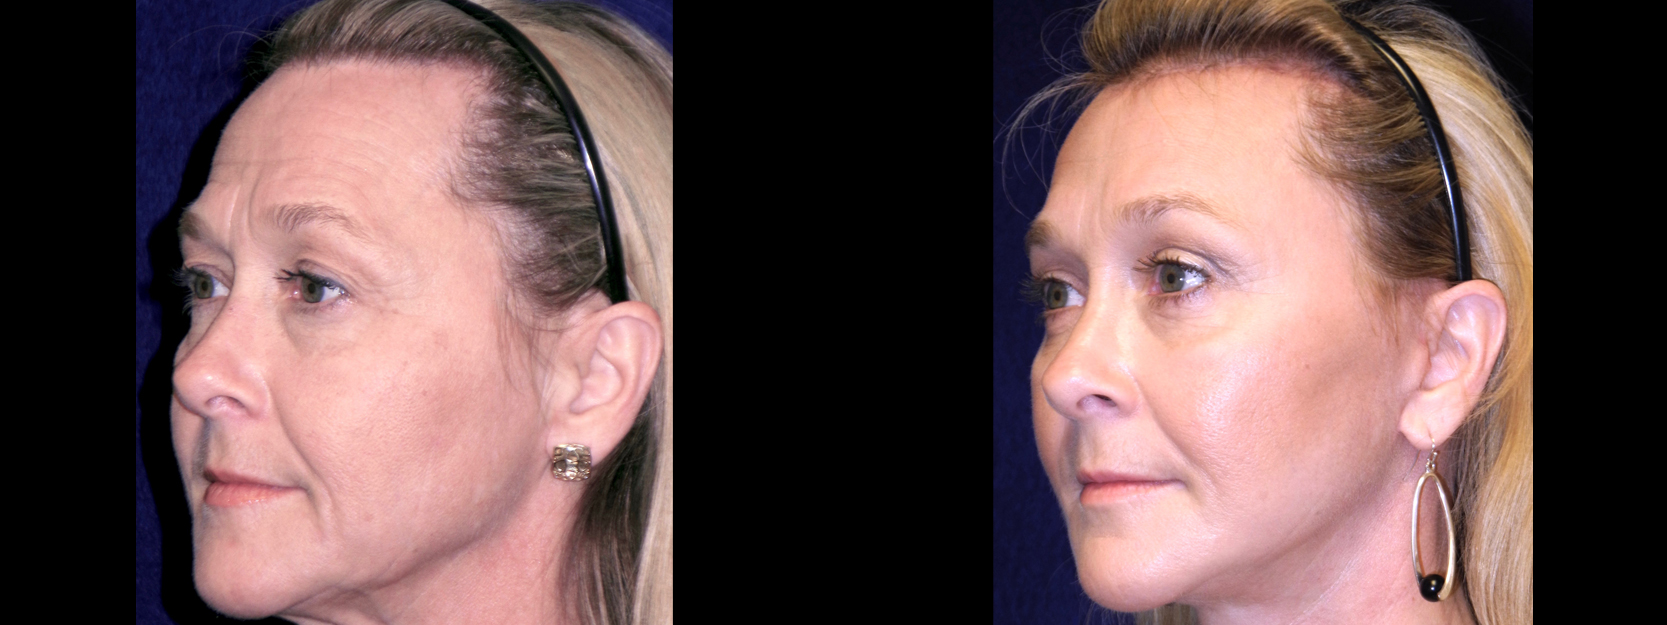 Left 3/4 View - Facelft, Browlift and Upper Eyelid Surgery